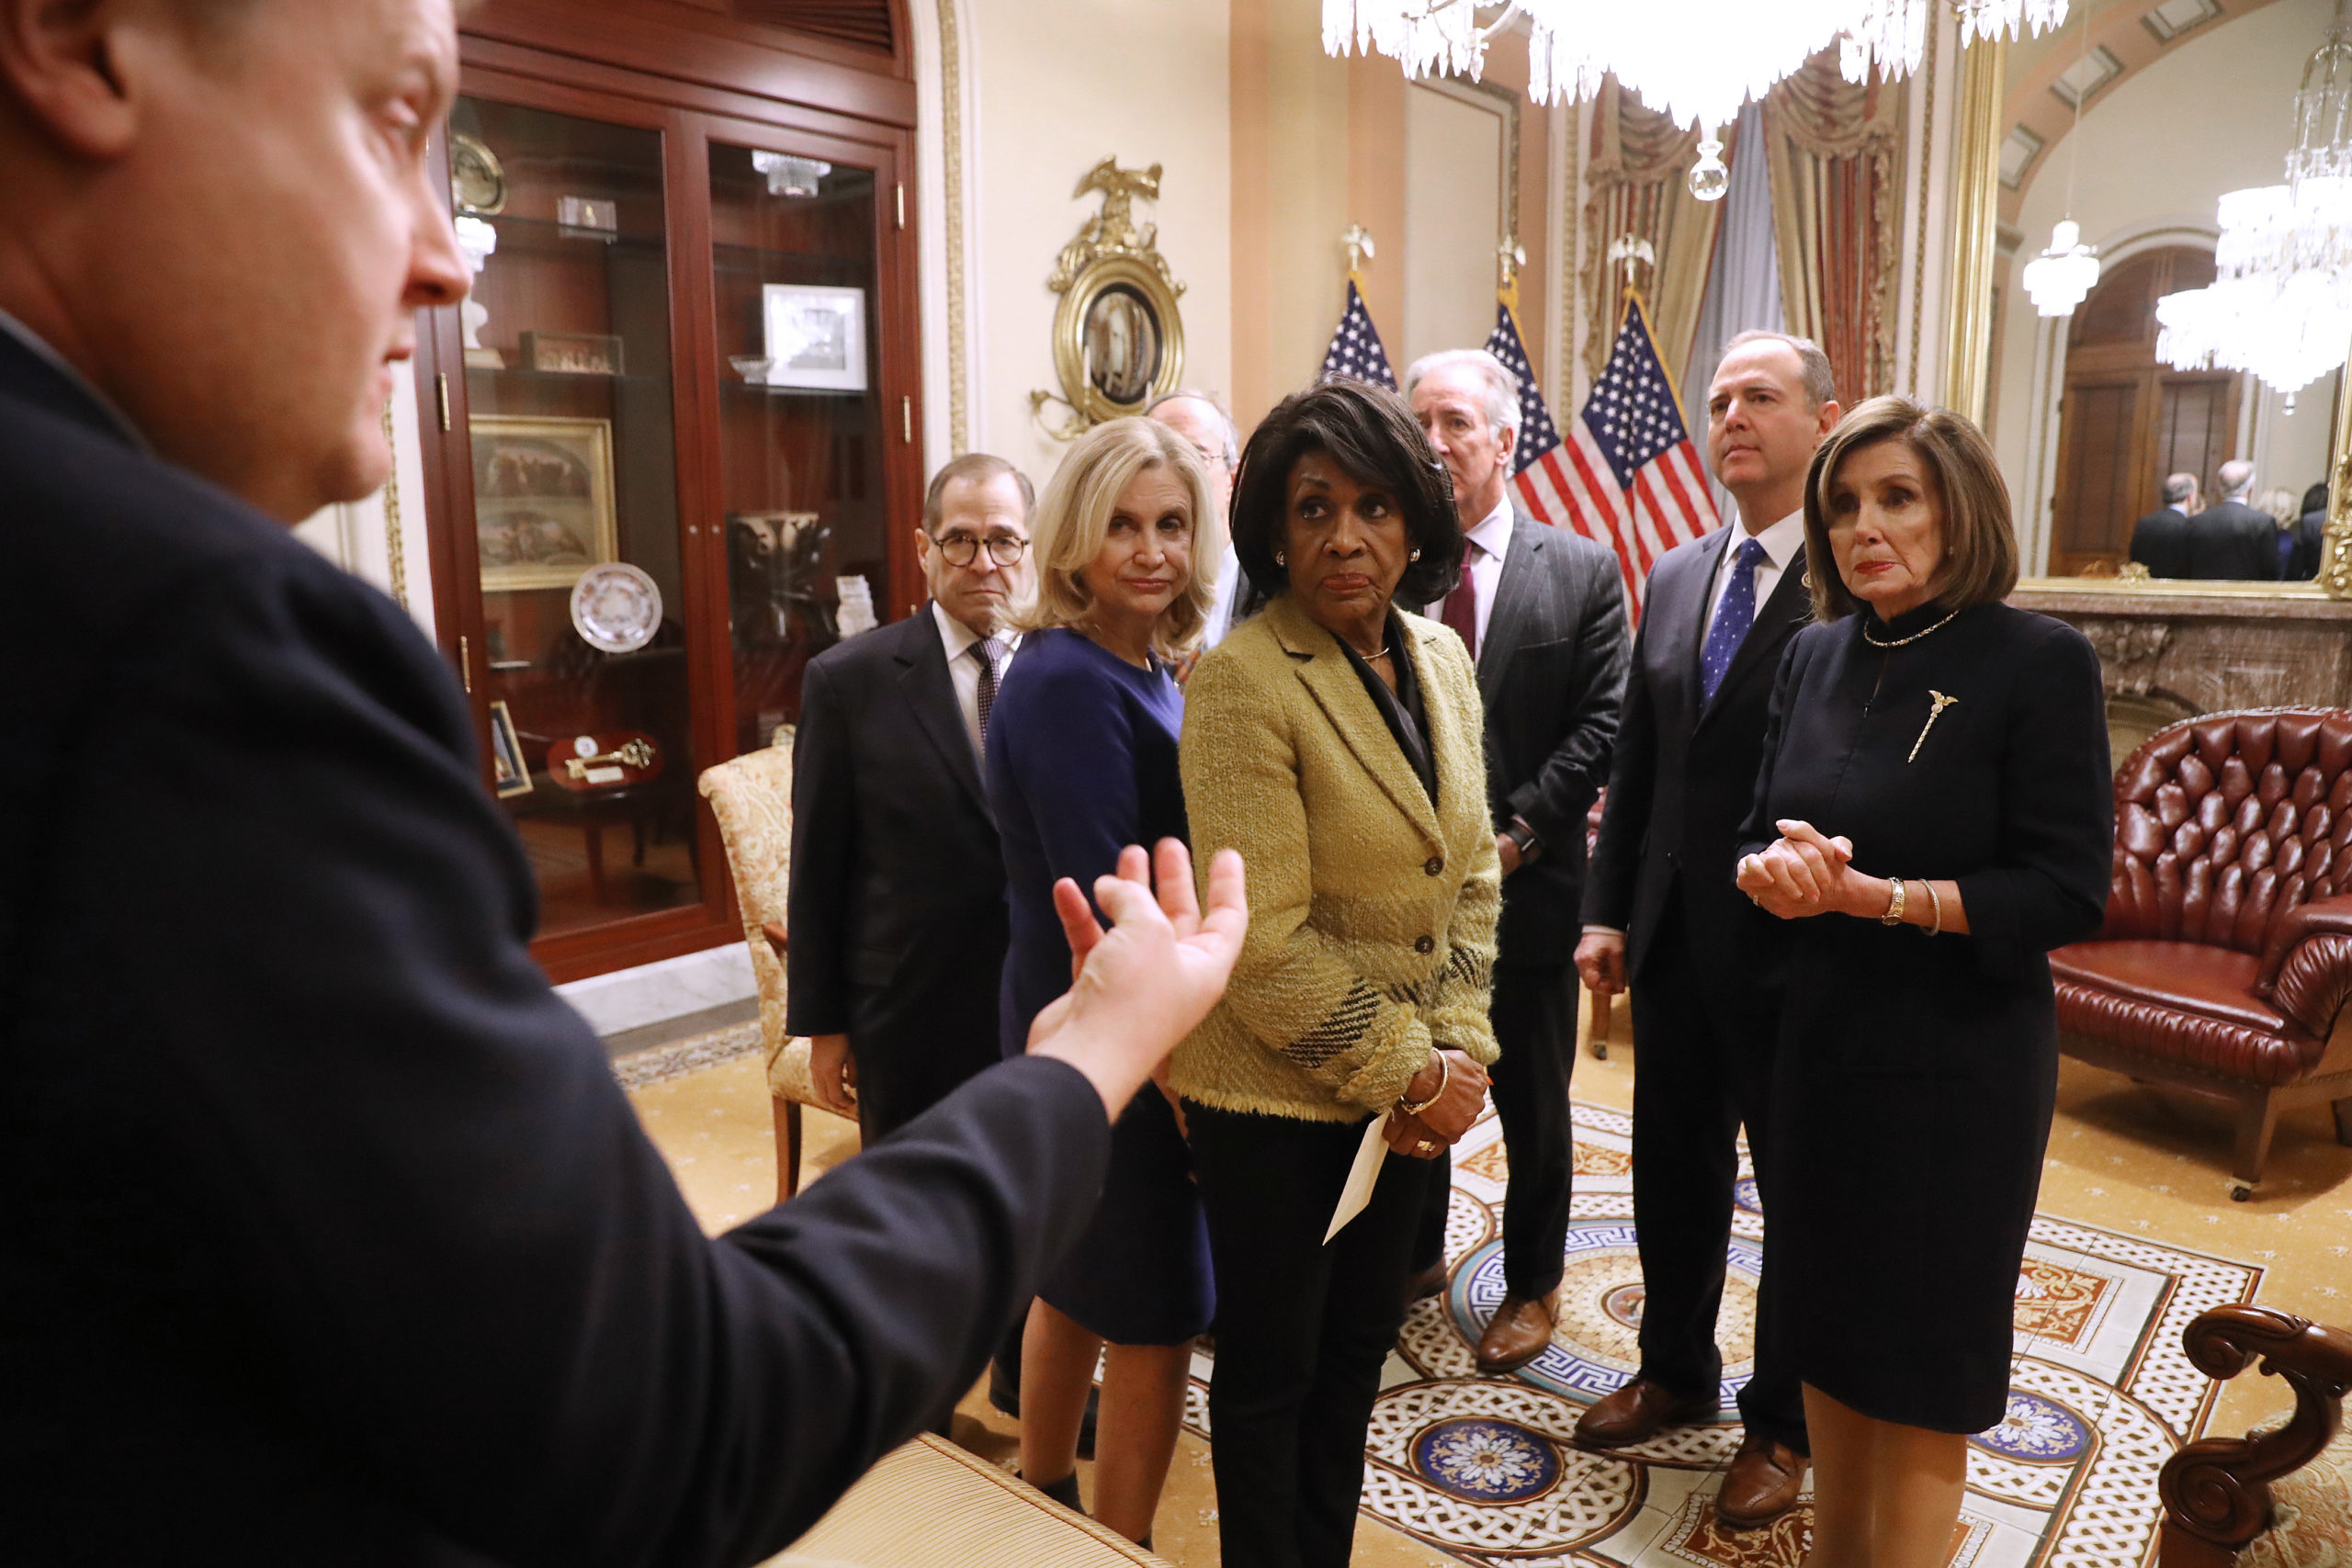 Rep. Maxine Waters (center-left), Speaker Nancy Pelosi and other Democratic committee chairs on December 18, 2019. (Chip Somodevilla/Getty Images)